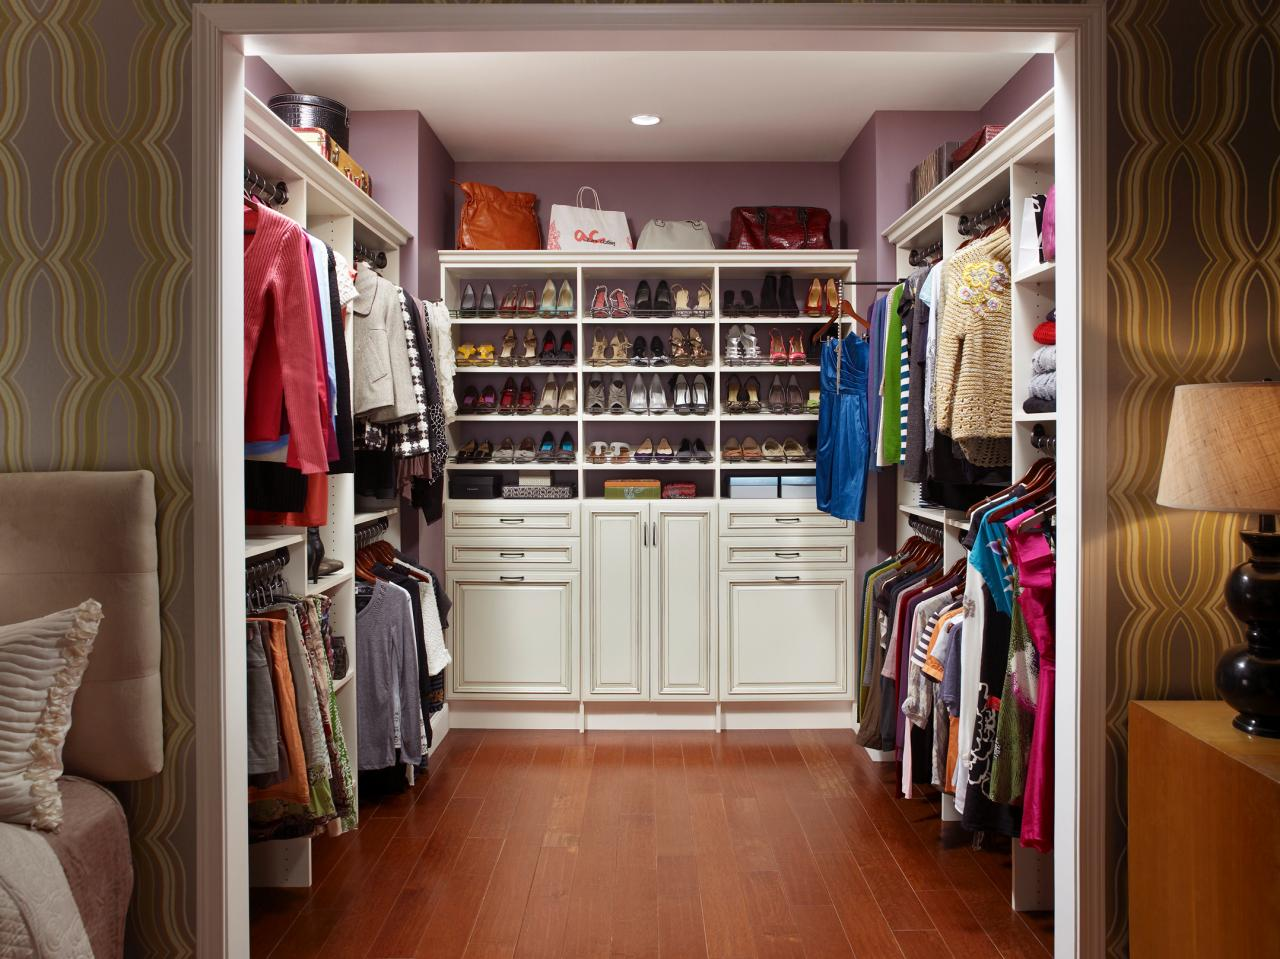 Make your closet look like a chic boutique bedrooms for Walk in closet remodel